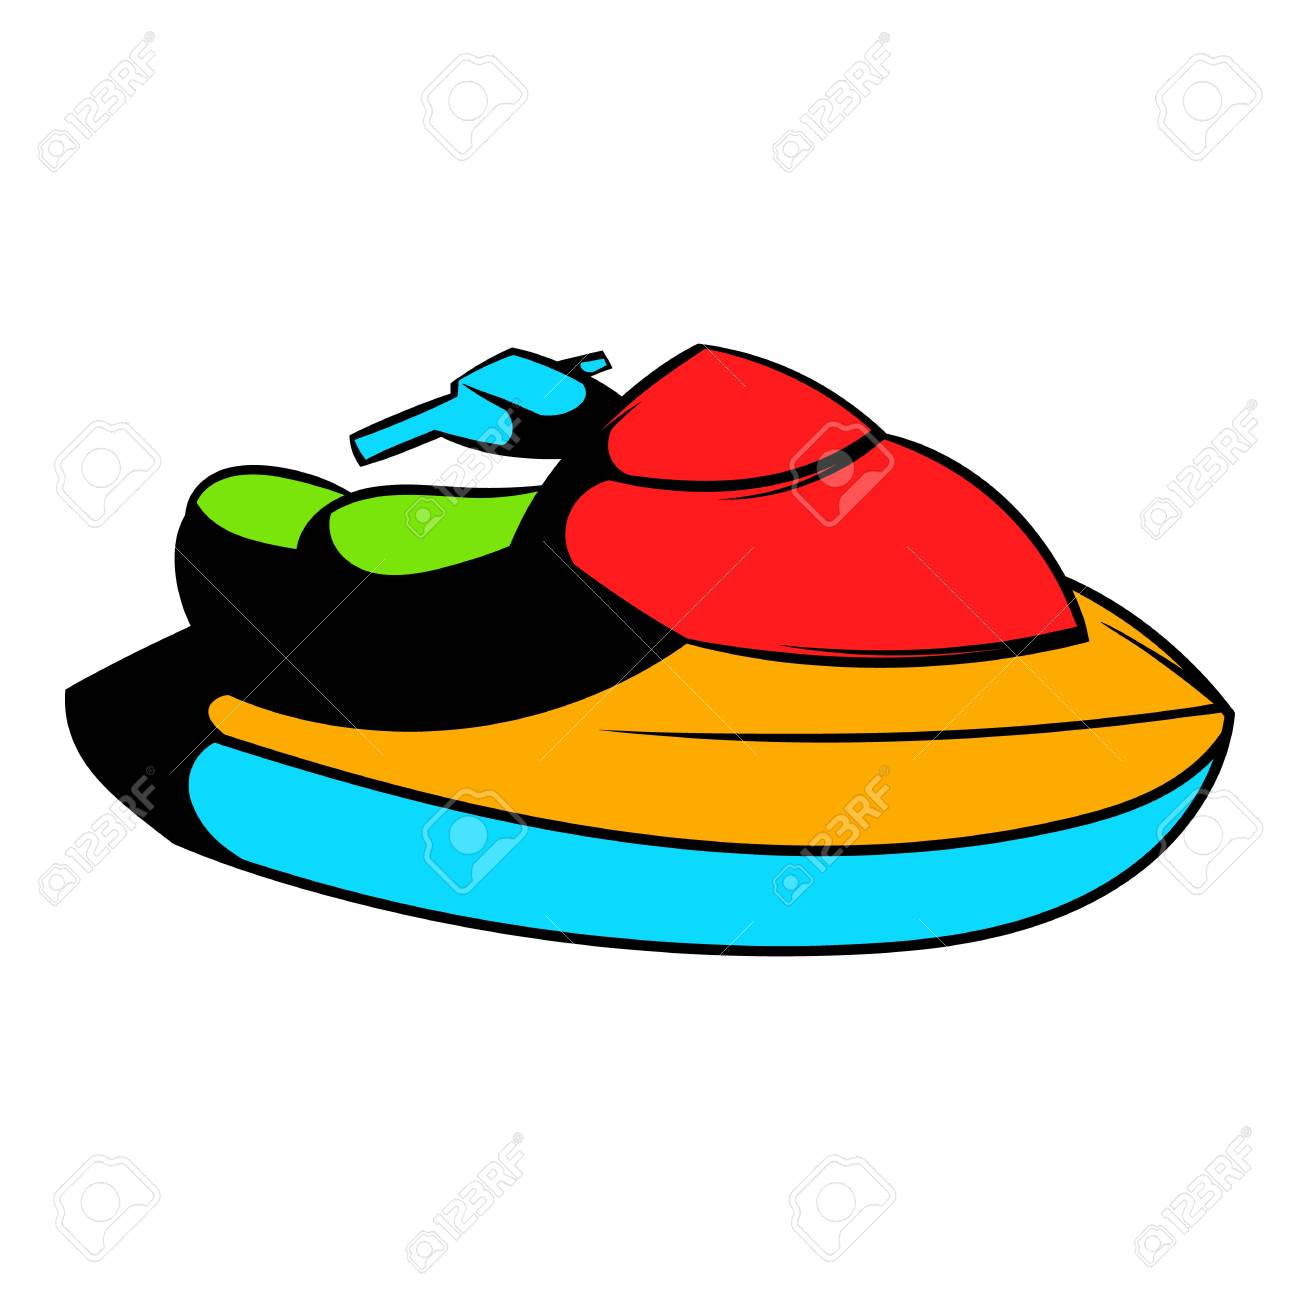 Jet Ski Water Scooter Icon Icon Cartoon Royalty Free Cliparts Vectors And Stock Illustration Image 74097164